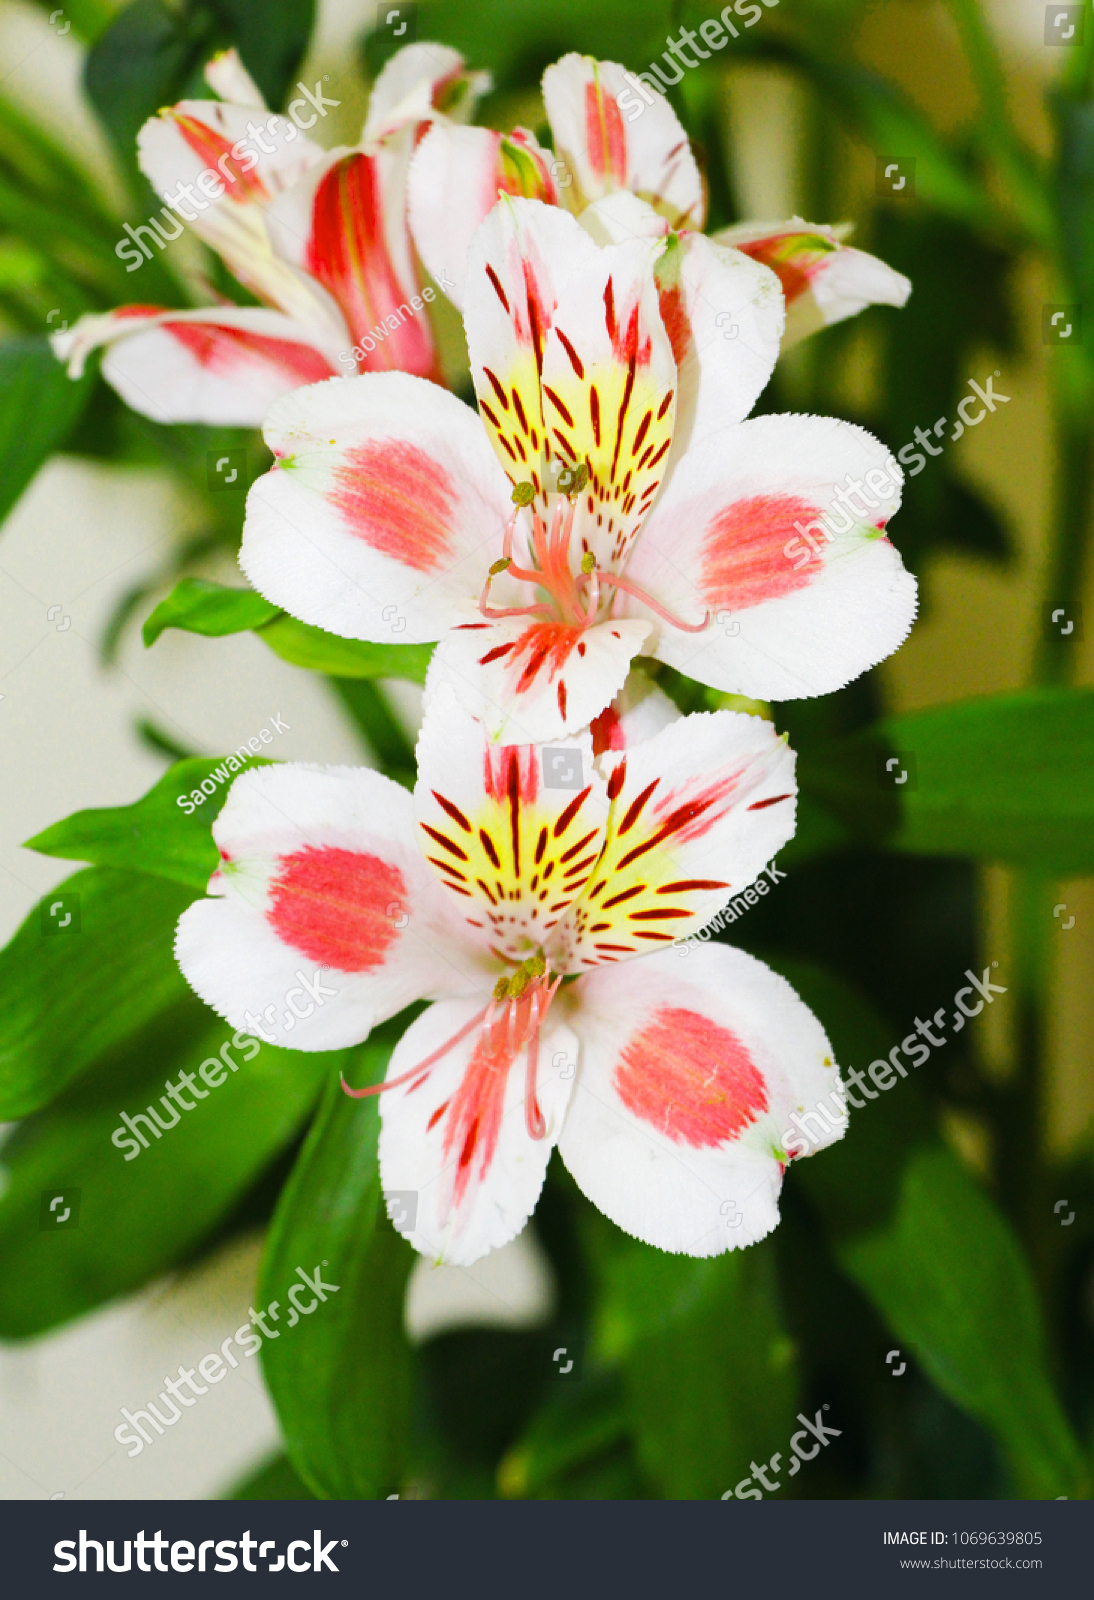 There alstroemeria flowers bouquet common name stock photo edit now there are alstroemeria flowers in the bouquet common name called the peruvian lily or lily izmirmasajfo